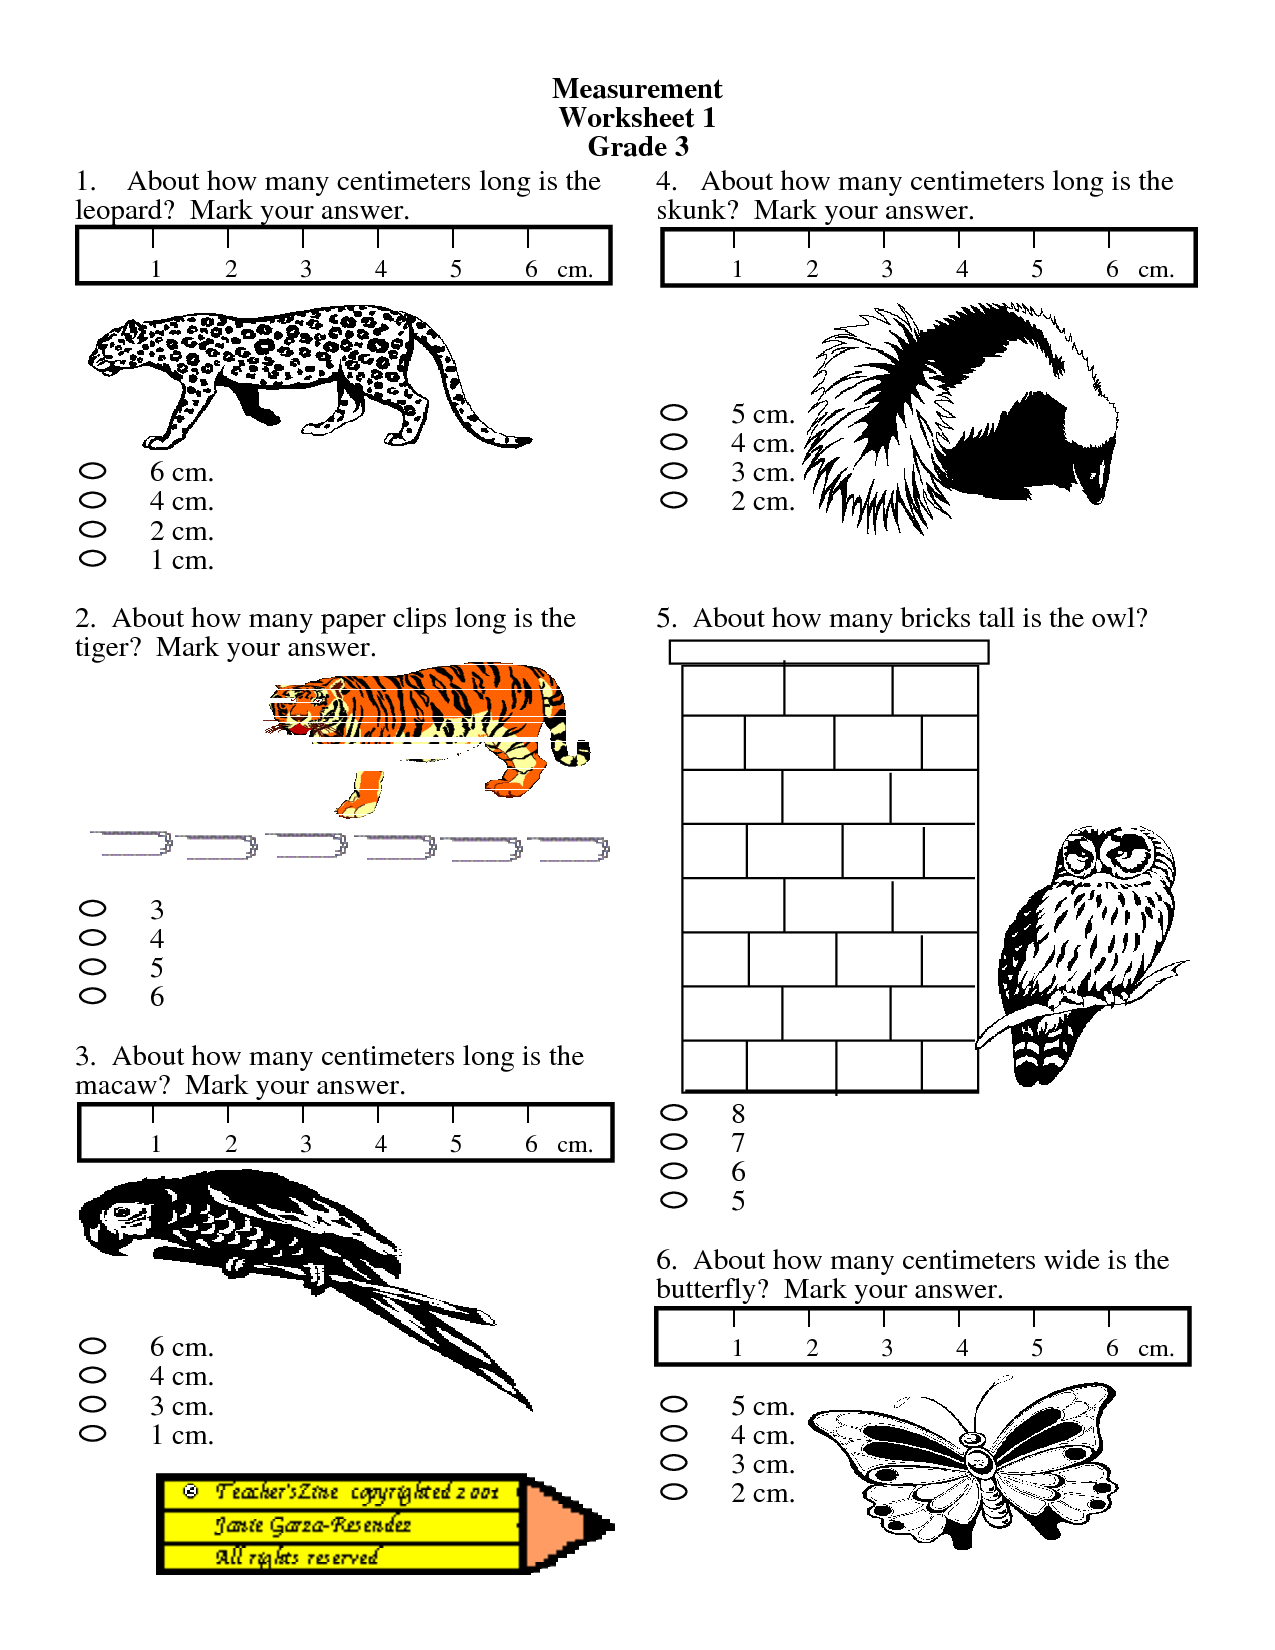 Worksheets Measurement Worksheets For Grade 2 1000 images about measurement on pinterest worksheets and grade 2